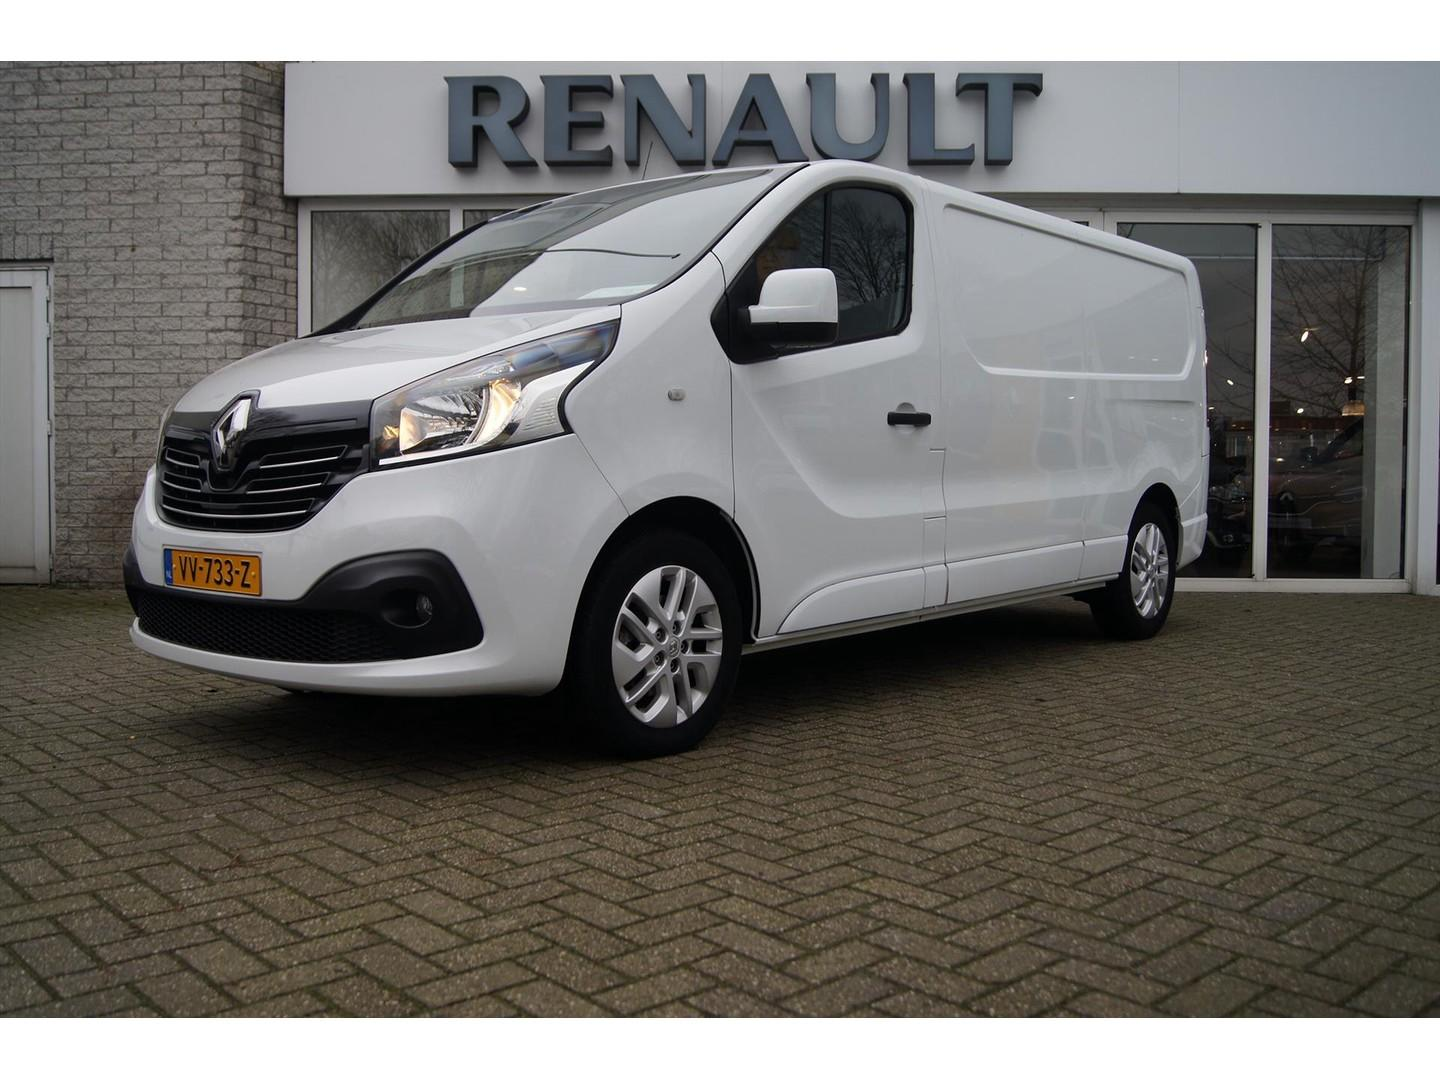 Renault Trafic Gb 1.6 energy dci 145pk twinturbo l2h1 t29 luxe